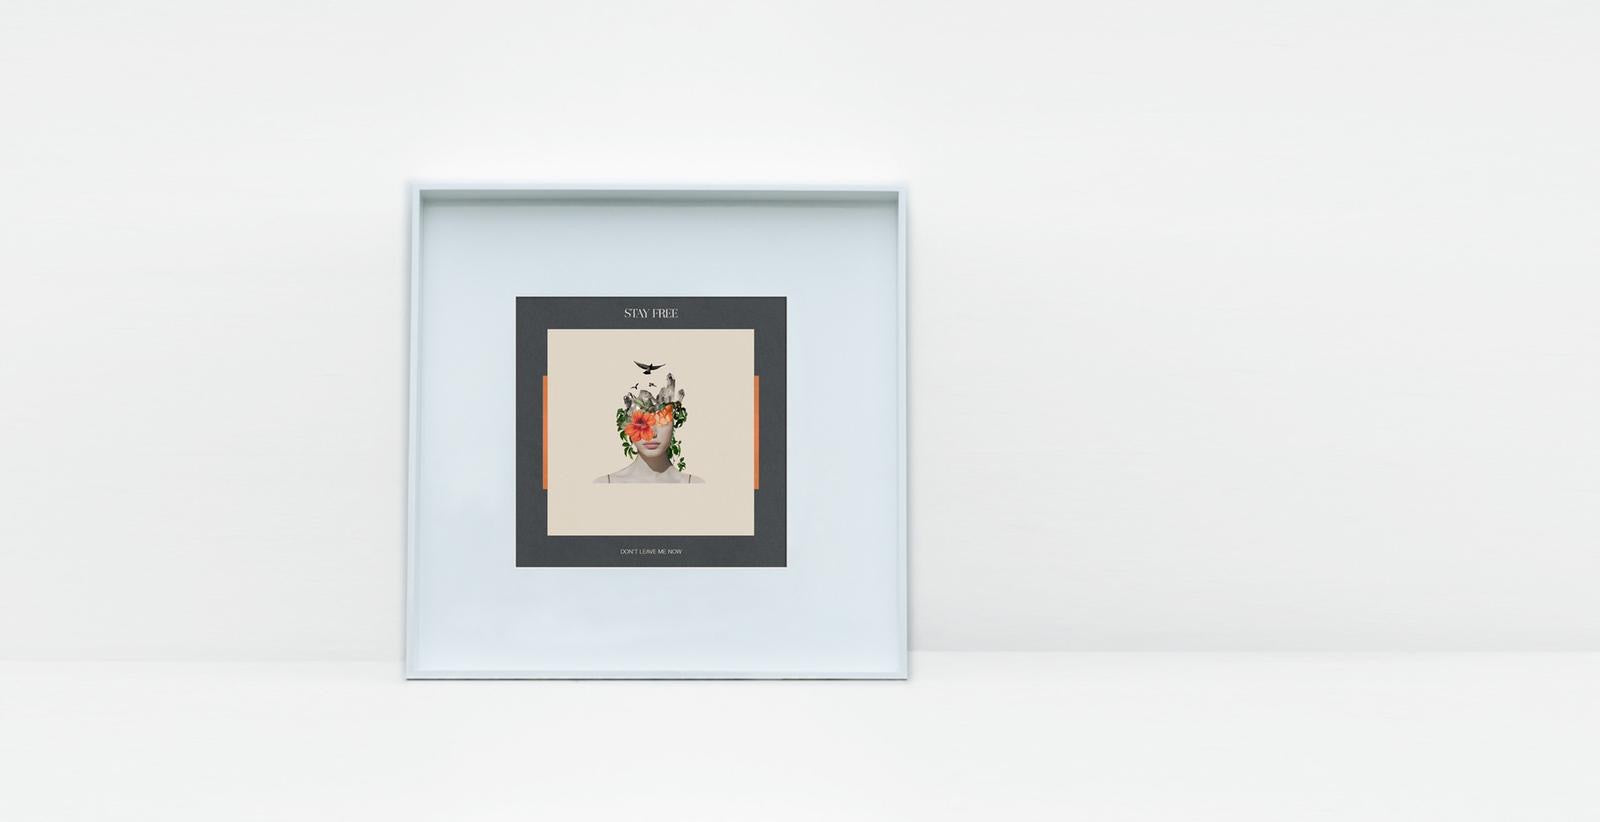 STAY FREE - Limited Edition 'Don't Leave Me Now' Prints